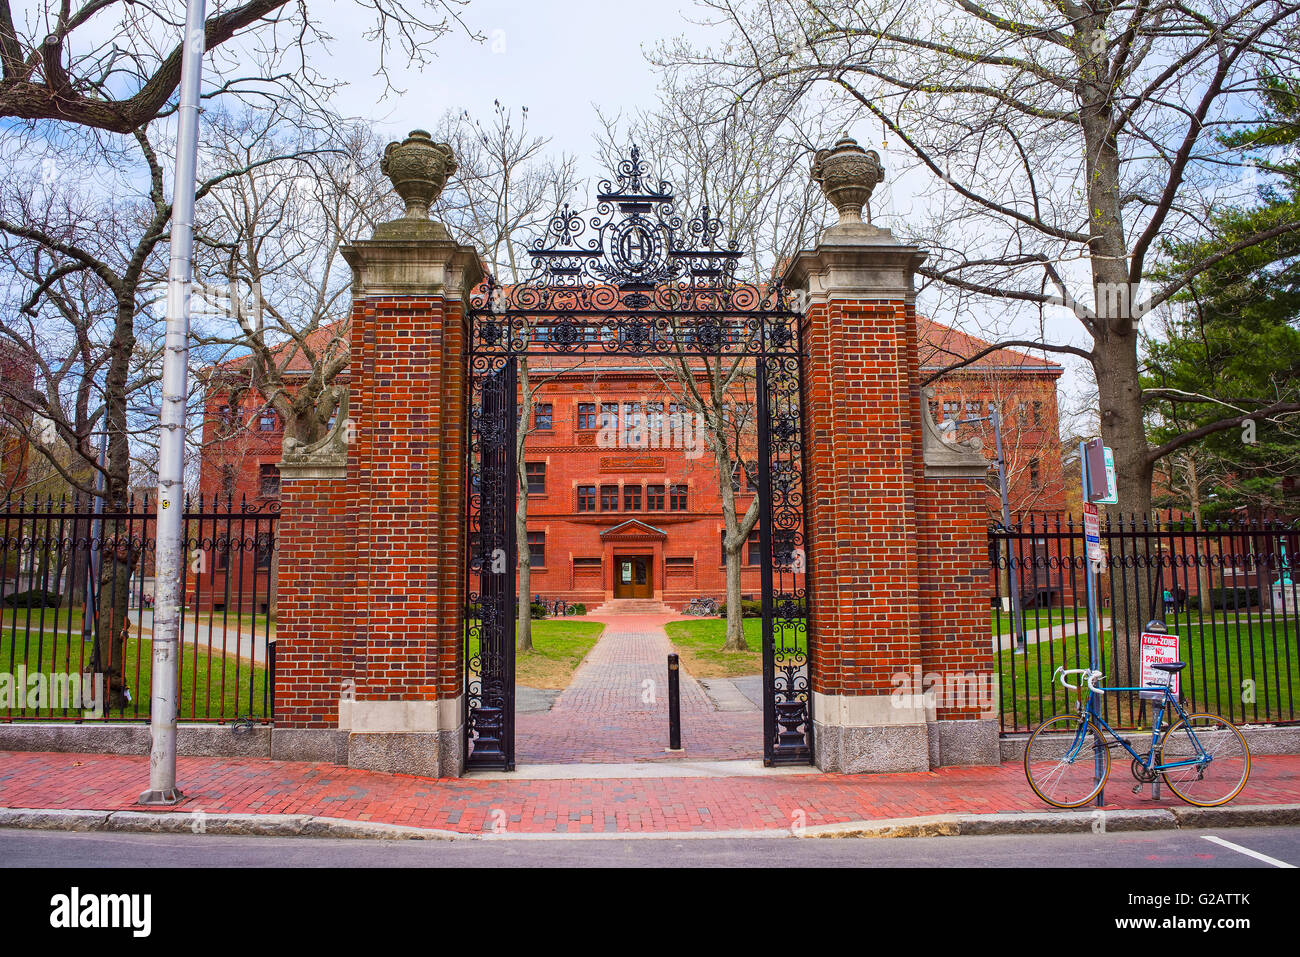 Entrance gate and East facade of Sever Hall at Harvard Yard in Harvard University in Cambridge, Massachusetts, MA, - Stock Image